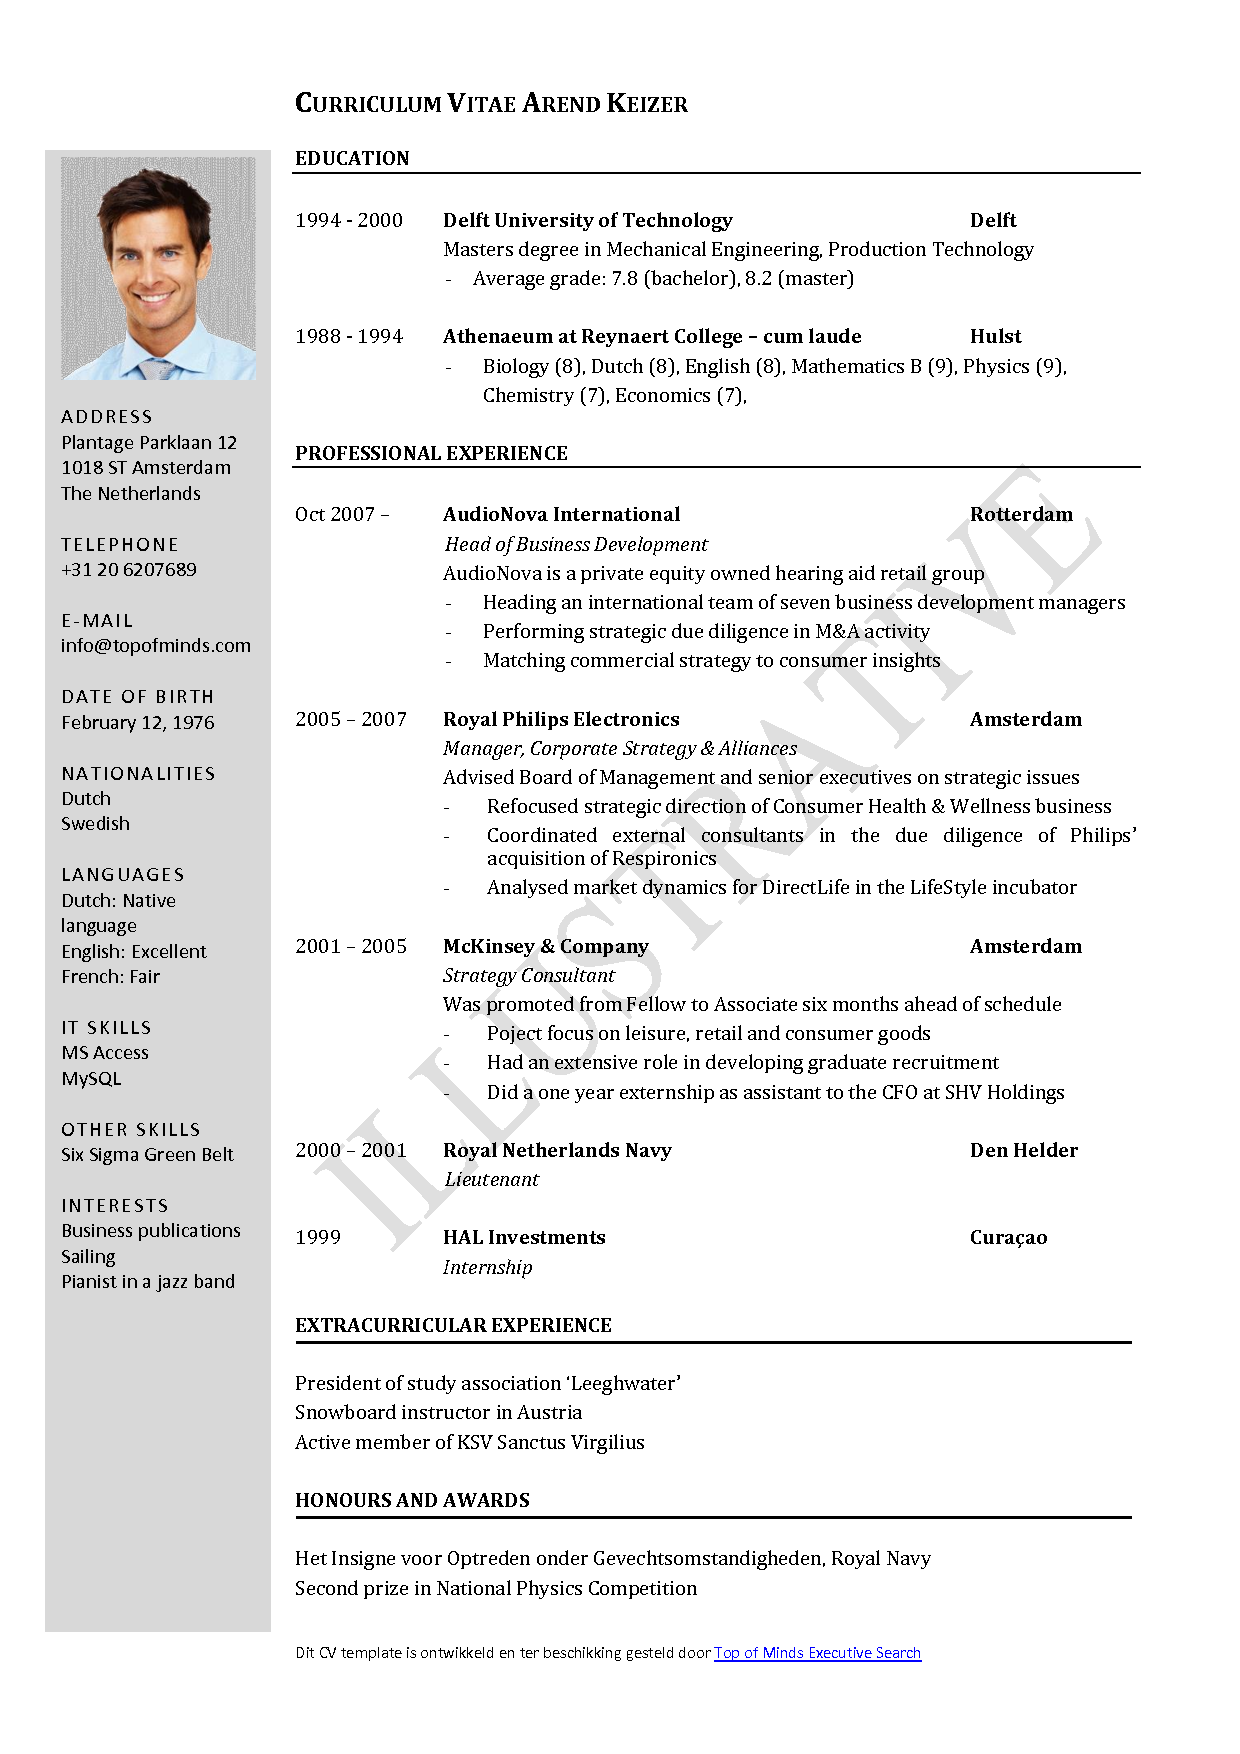 free curriculum vitae template word download cv template - Template For Resume Word